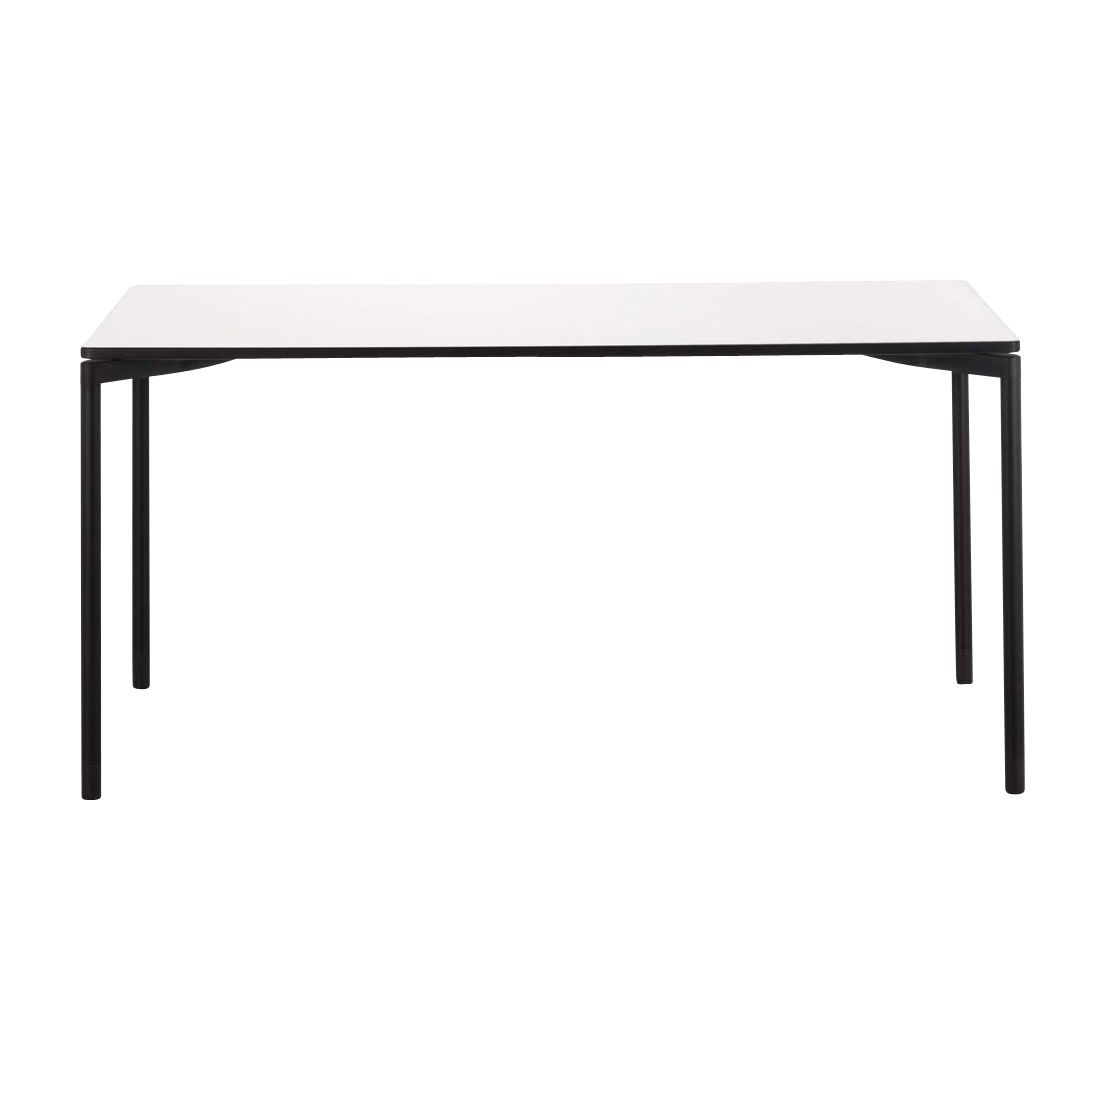 map table schreibtisch vitra. Black Bedroom Furniture Sets. Home Design Ideas